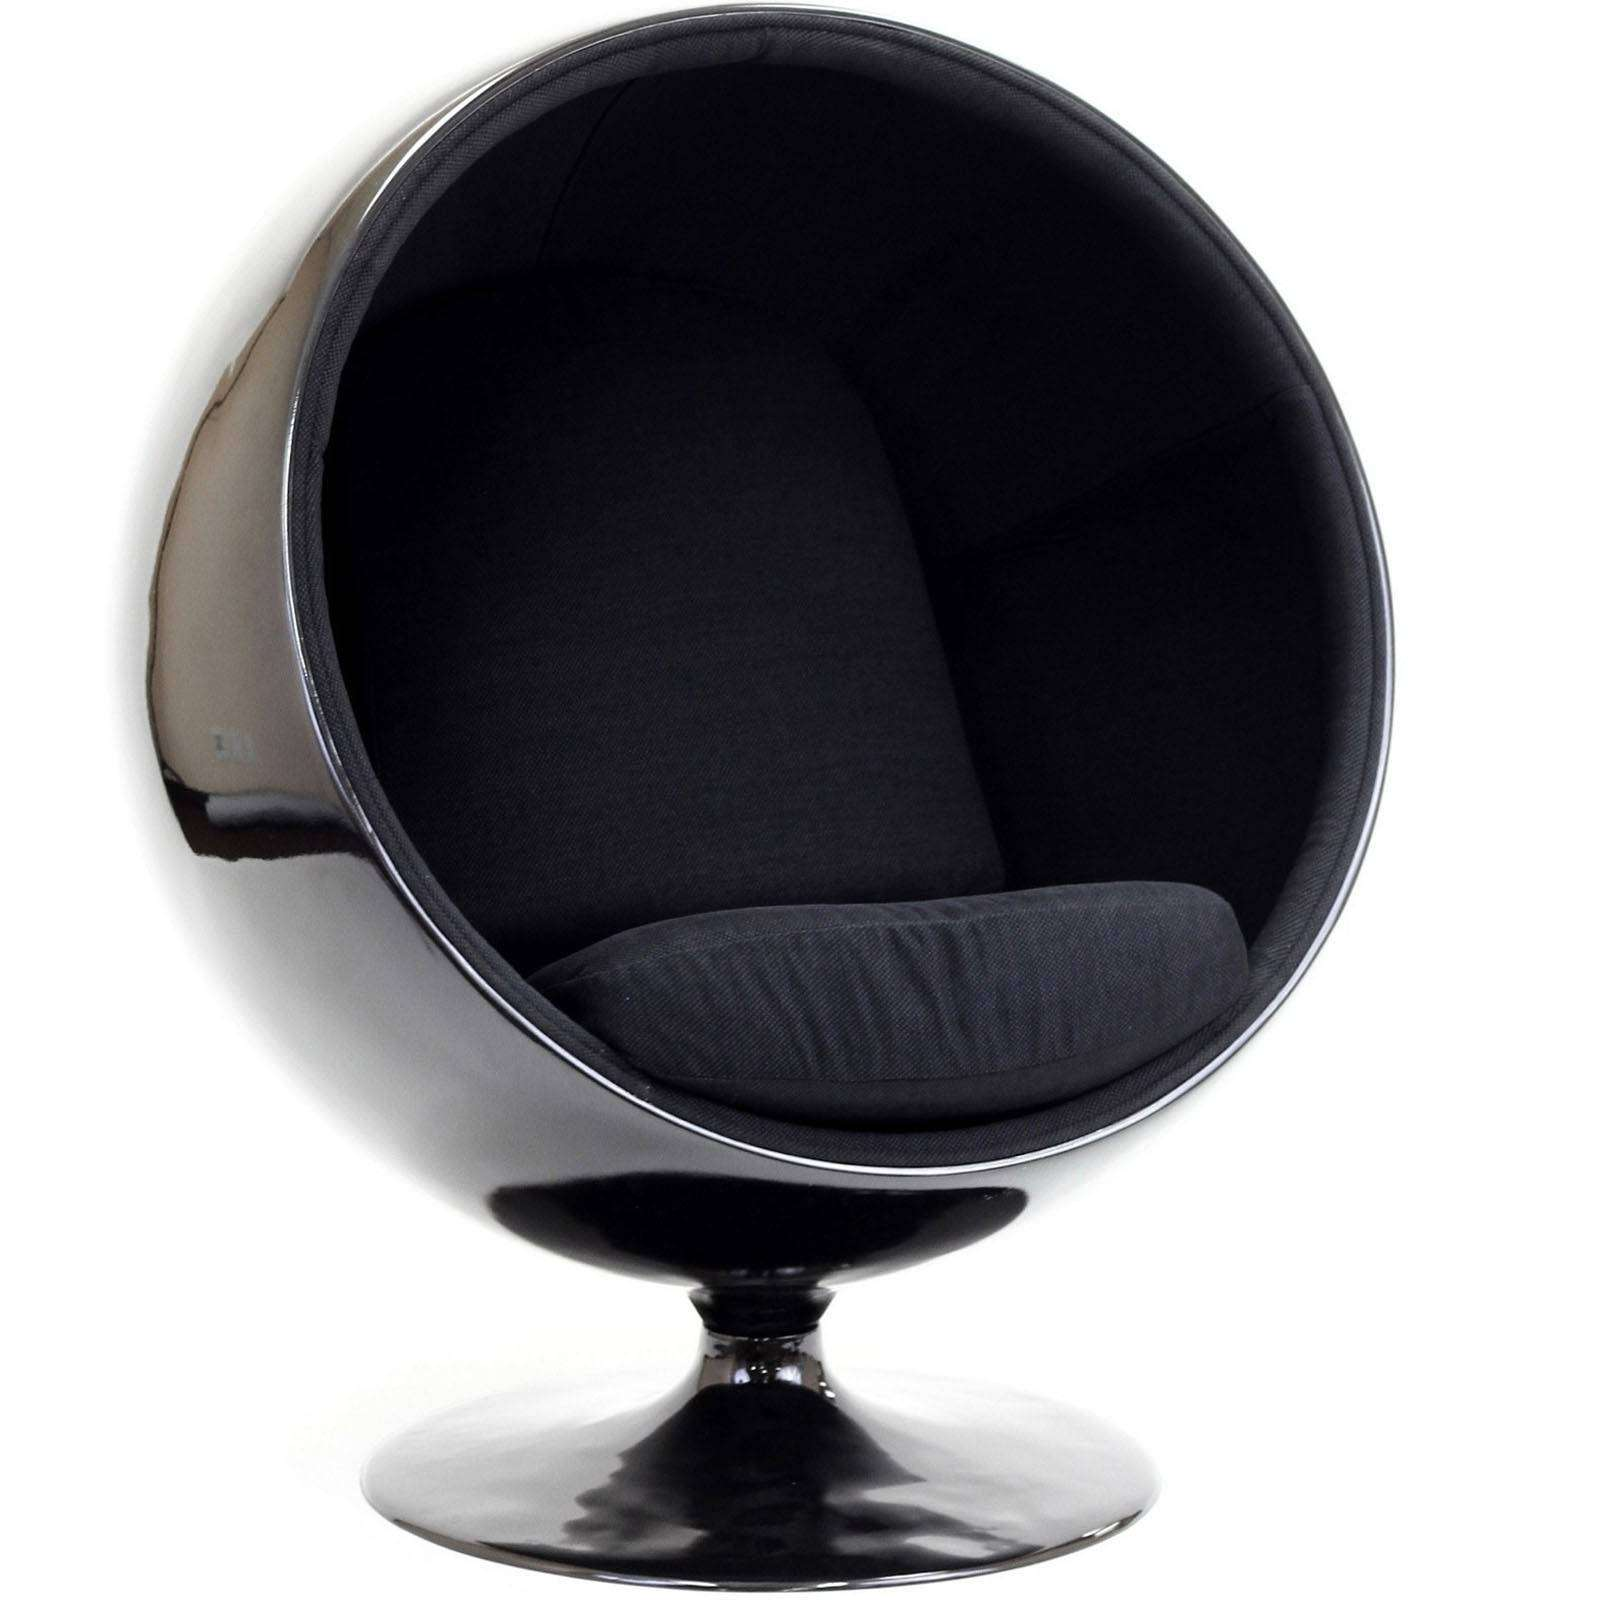 modern ball lounge chair classroom covers with pocket eero aarnio style